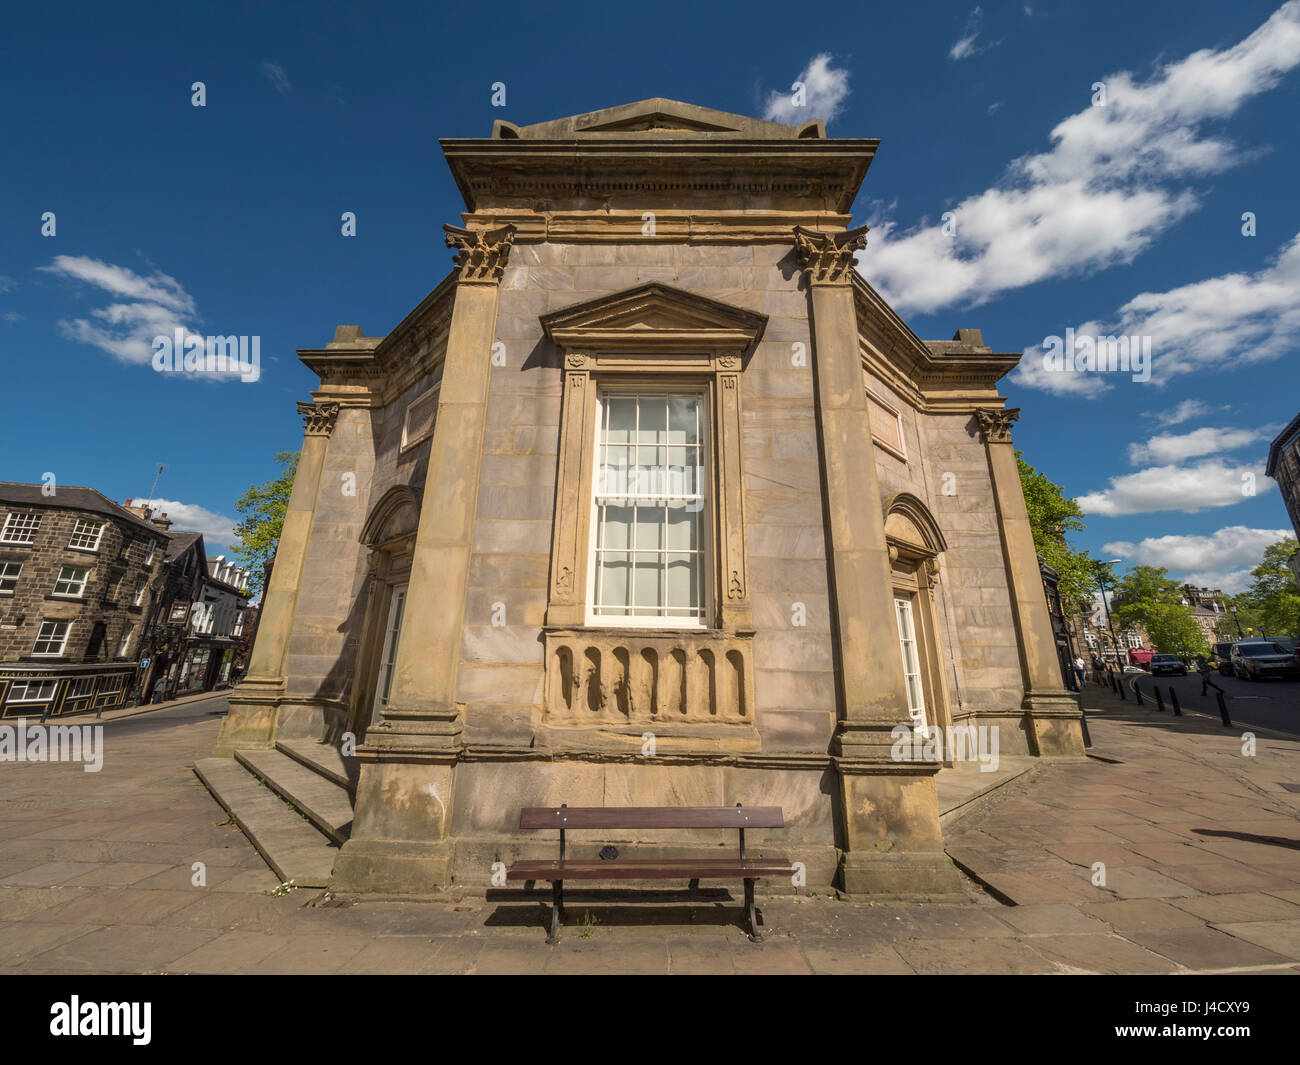 Le Royal Pump Room Museum, Harrogate, Royaume-Uni. Photo Stock